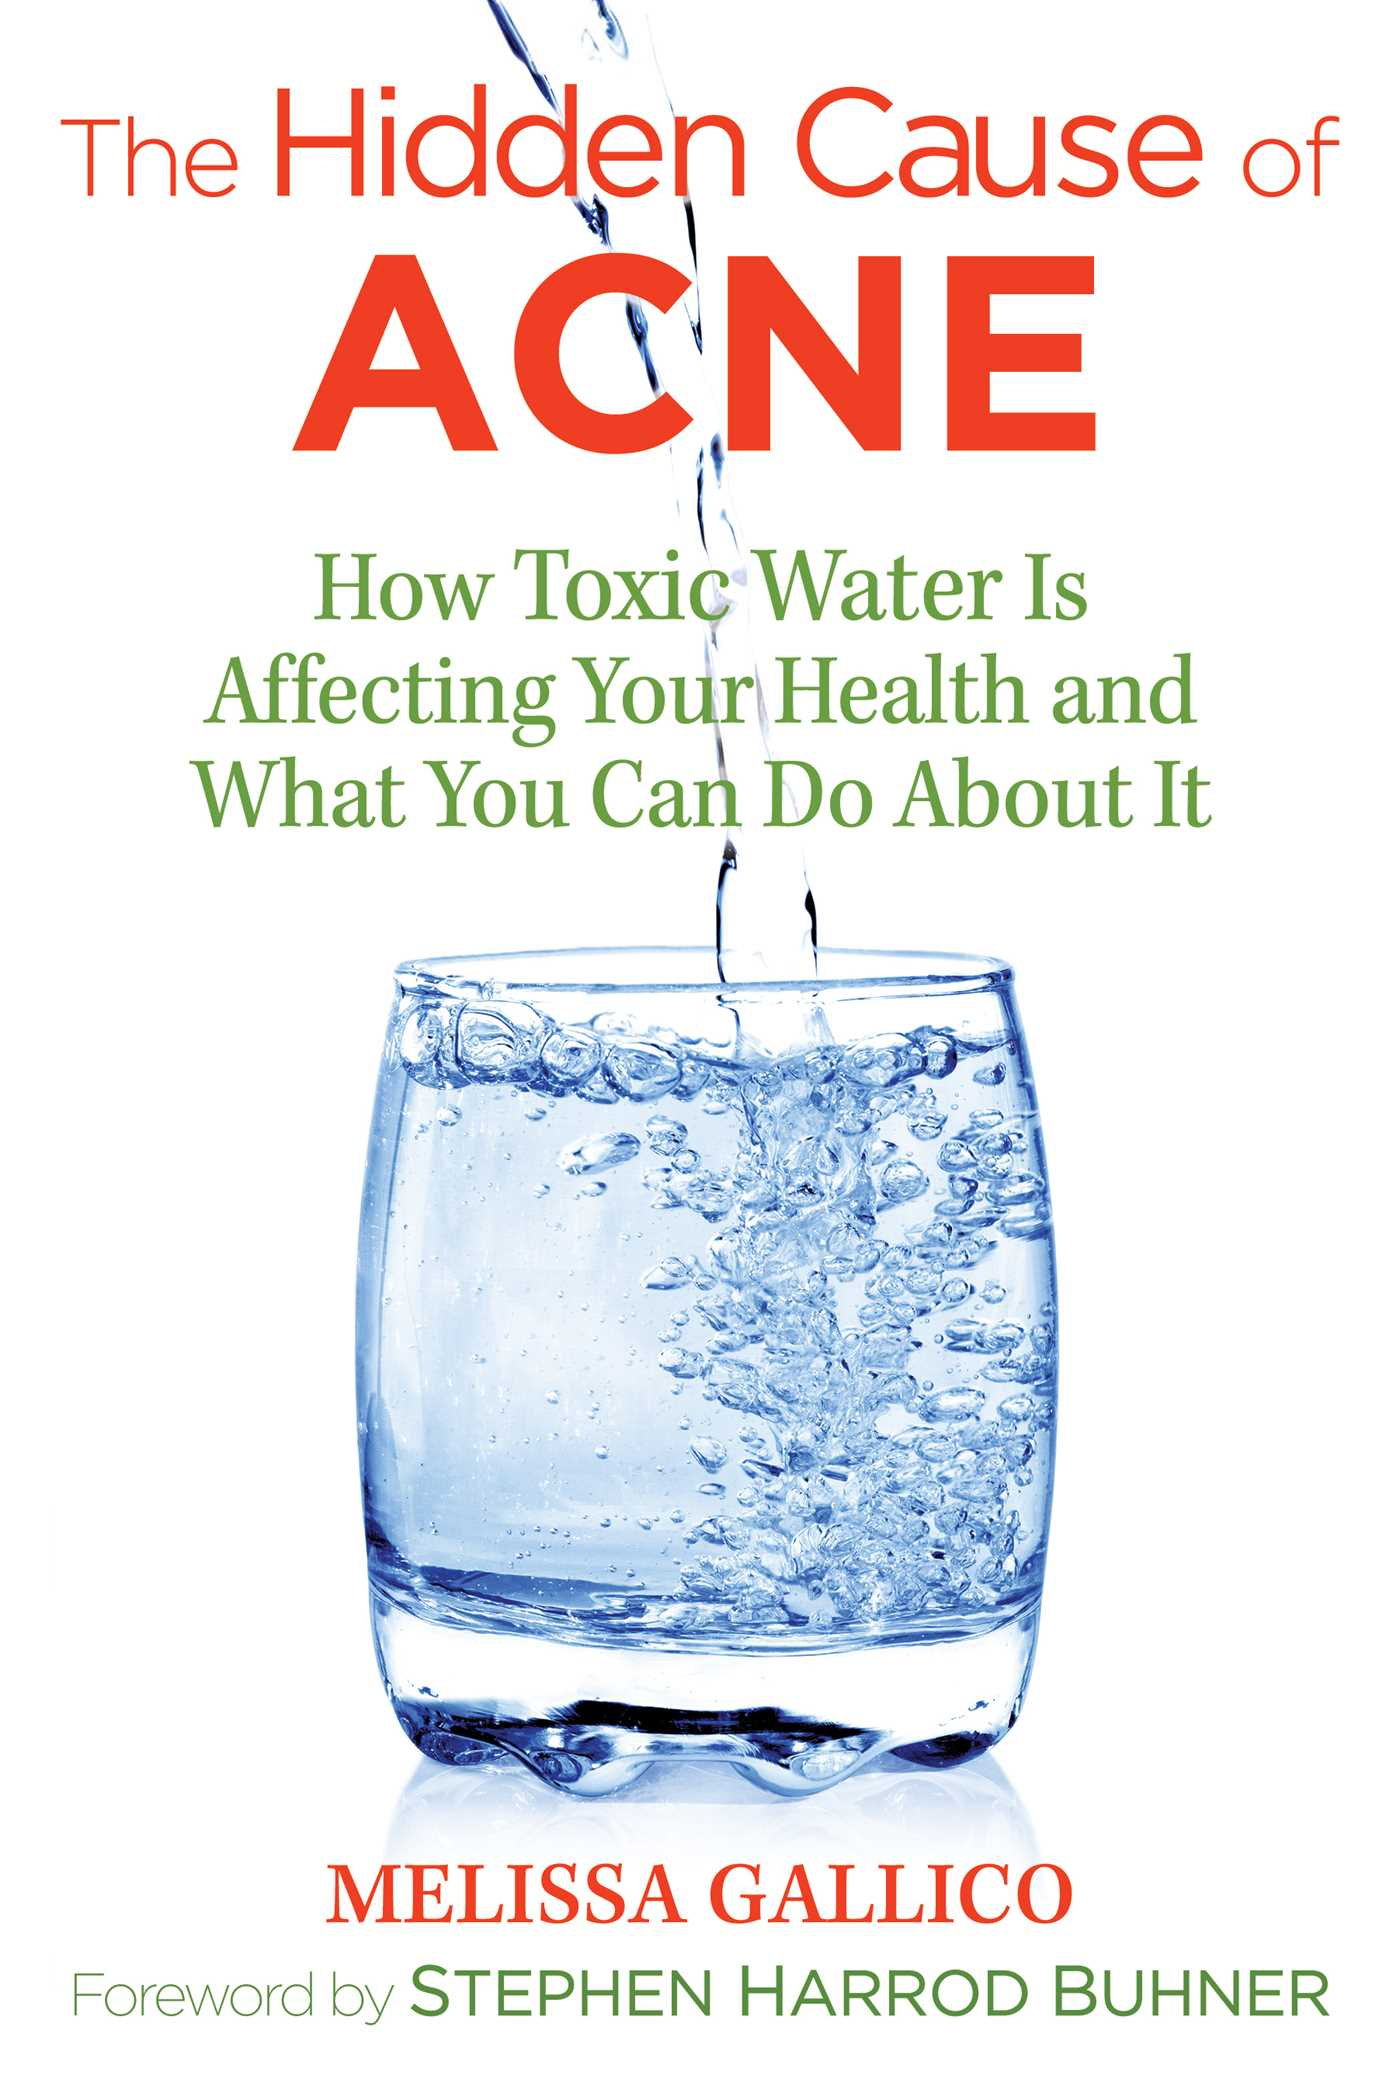 The hidden cause of acne 9781620557099 hr